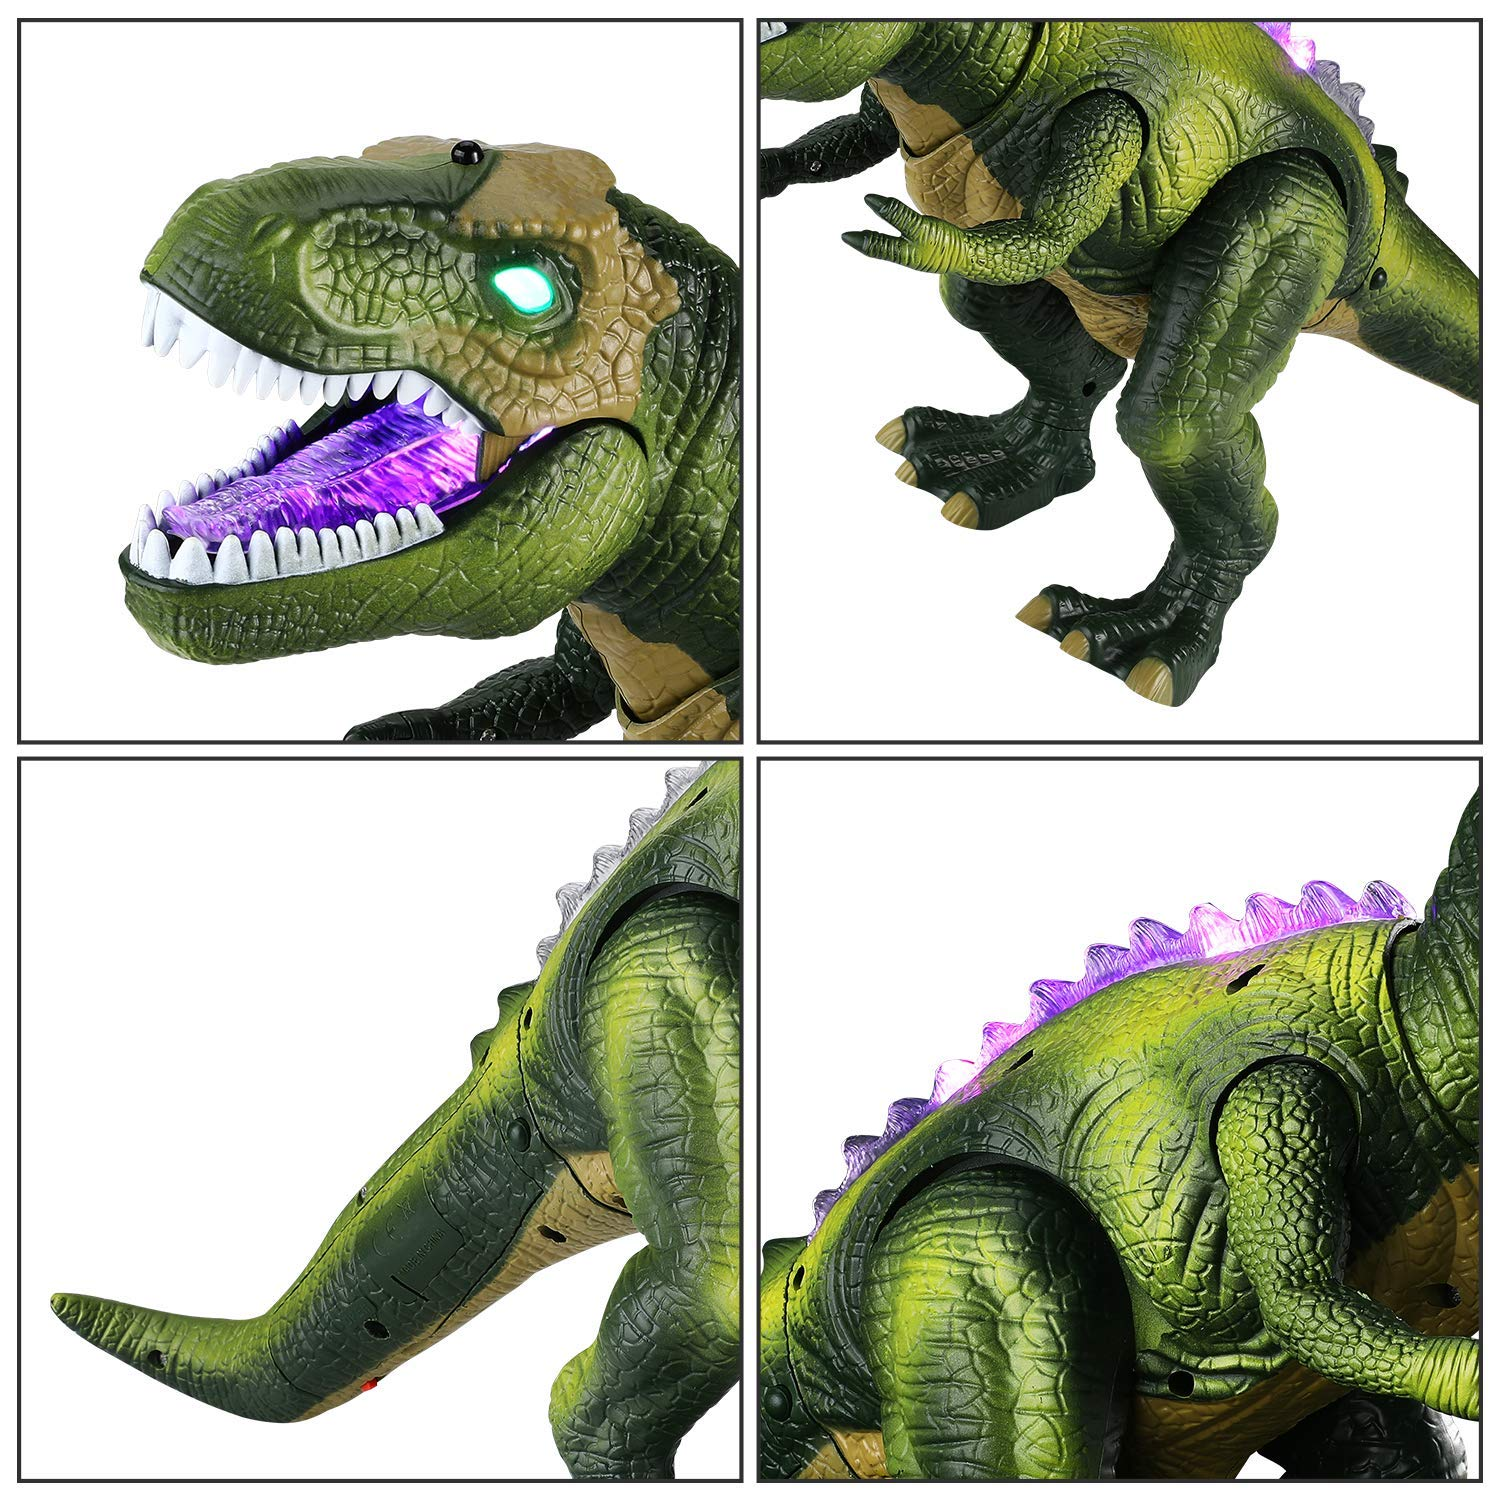 Tuko Light Up Remote Control Dinosaur Toys Jurassic World Walking and Roaring Realistic T-Rex Dinosaur Toys with Glowing Eyes, Walking Movement, Shaking Head for Toddlers Boys Girls by Tuko (Image #5)